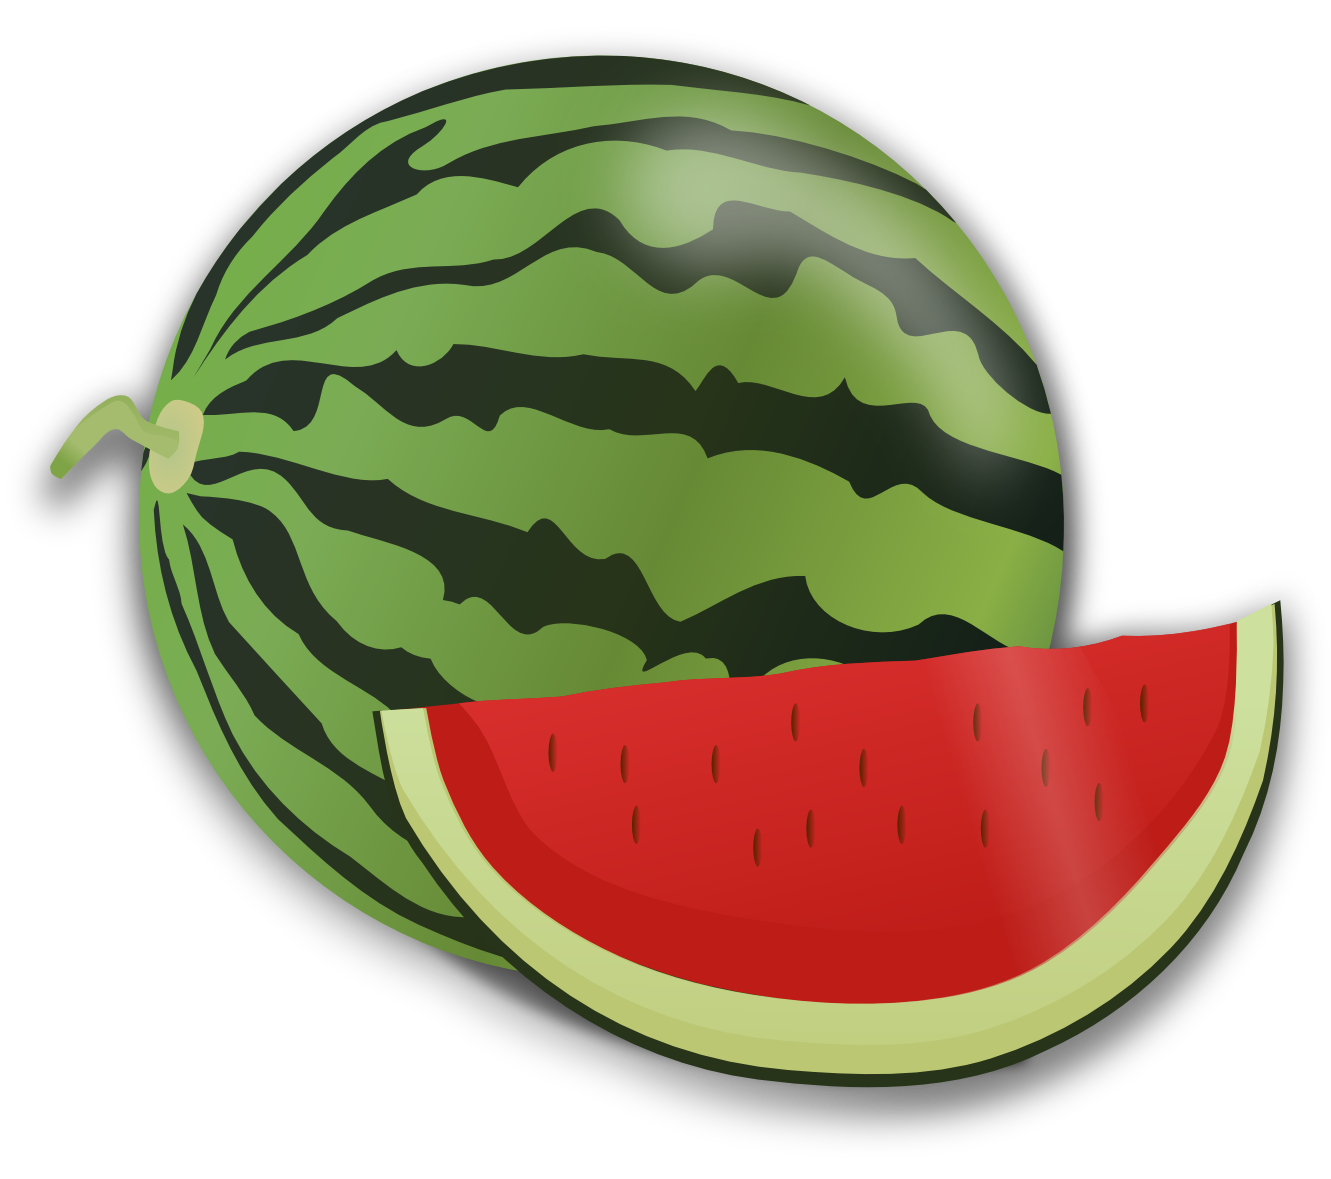 Melon clipart watermelon slice Clipart Watermelon cliparts slice collection